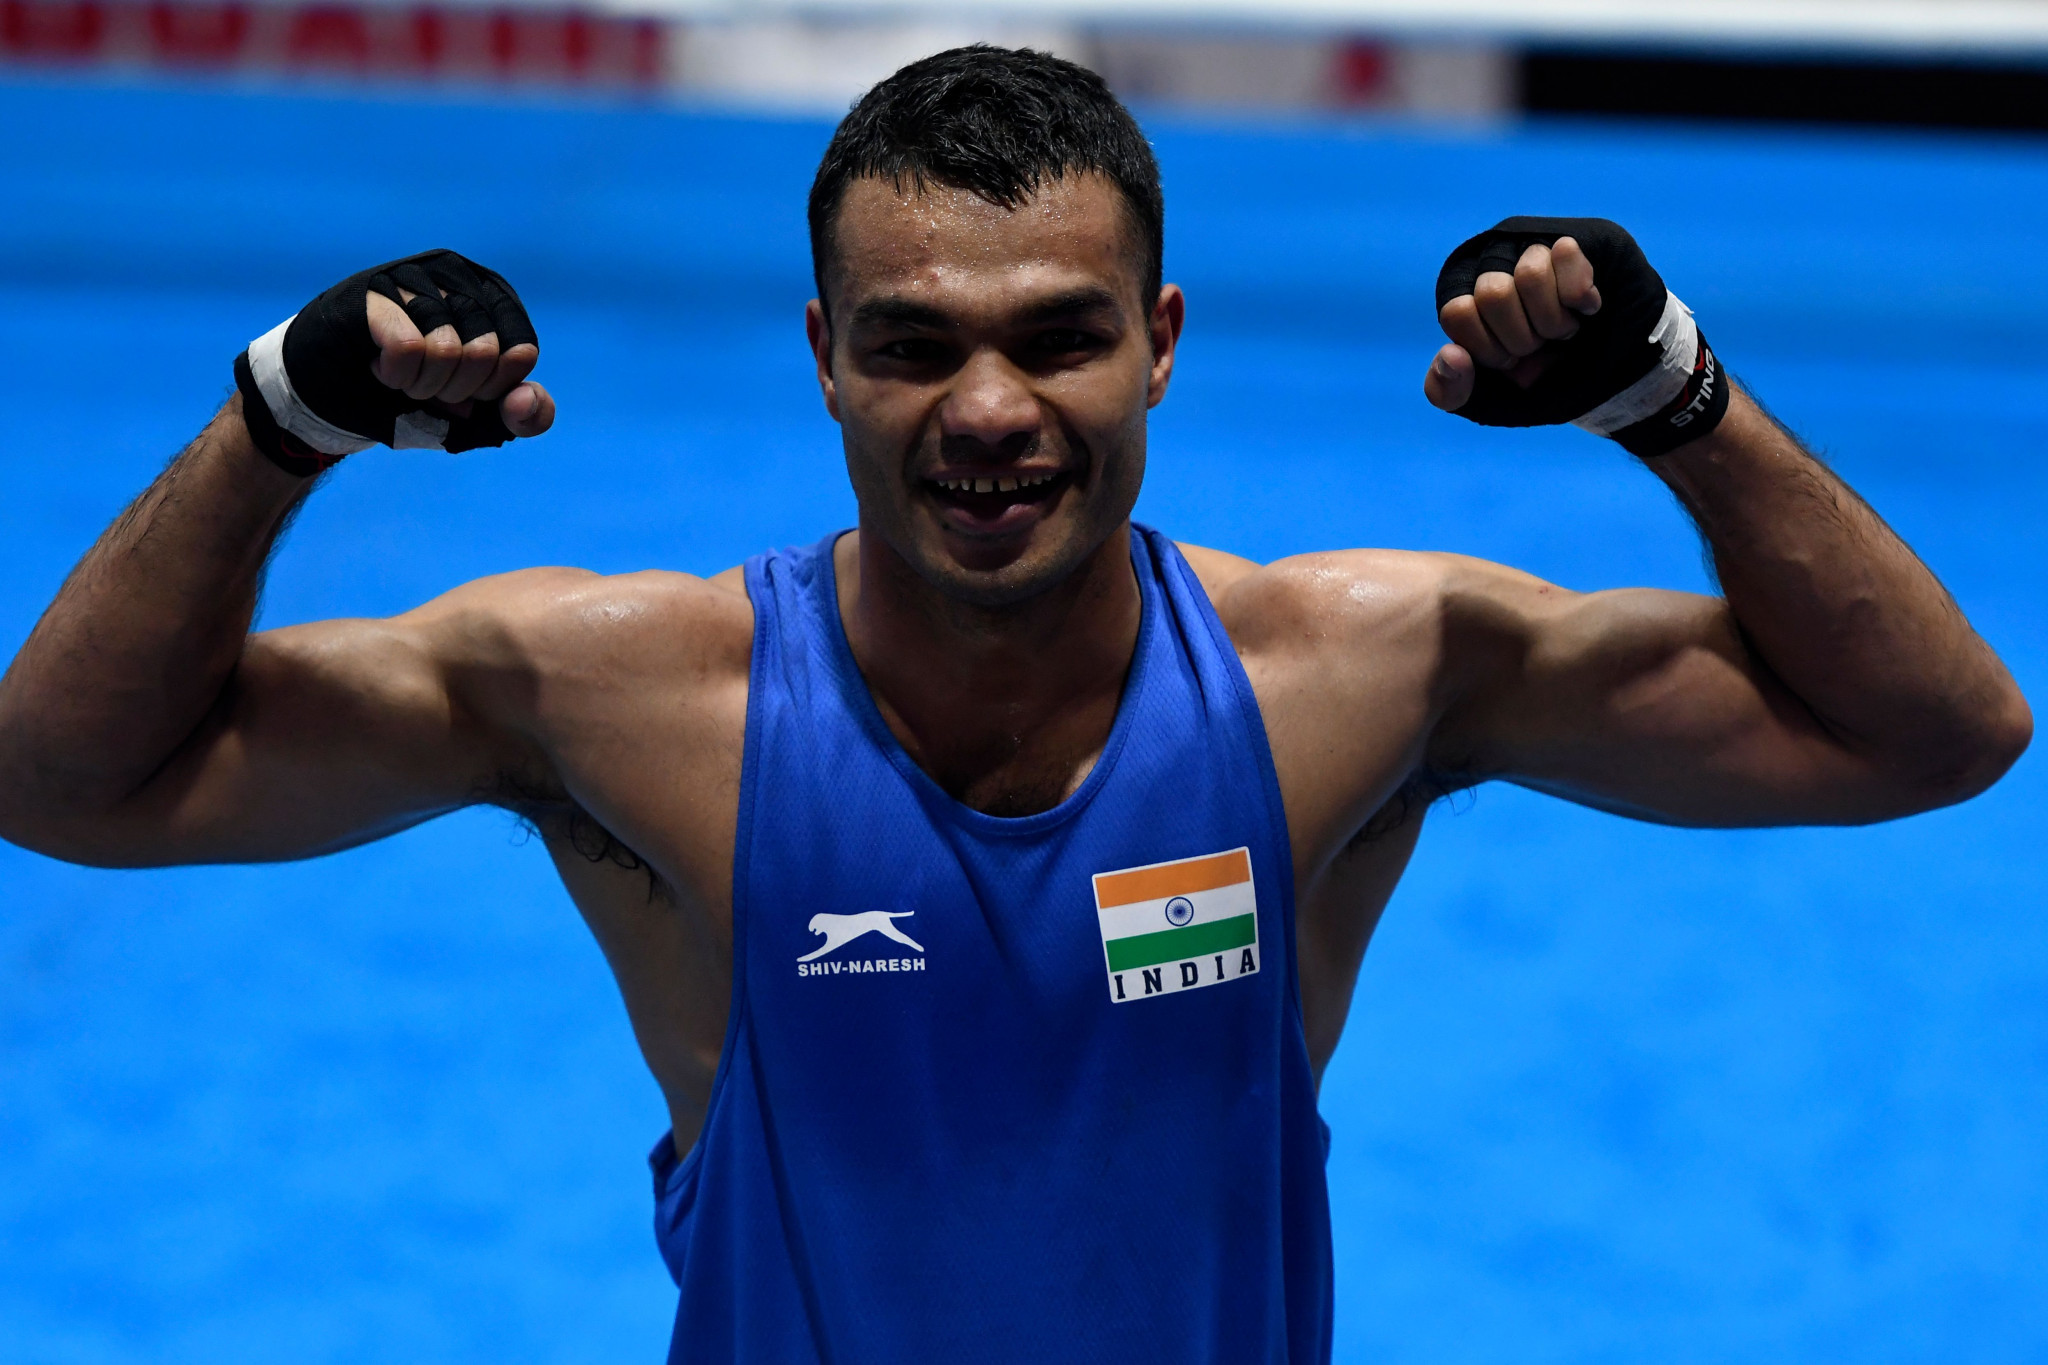 India's boxing team are undergoing an extended period of quarantine before training can resume ©Getty Images